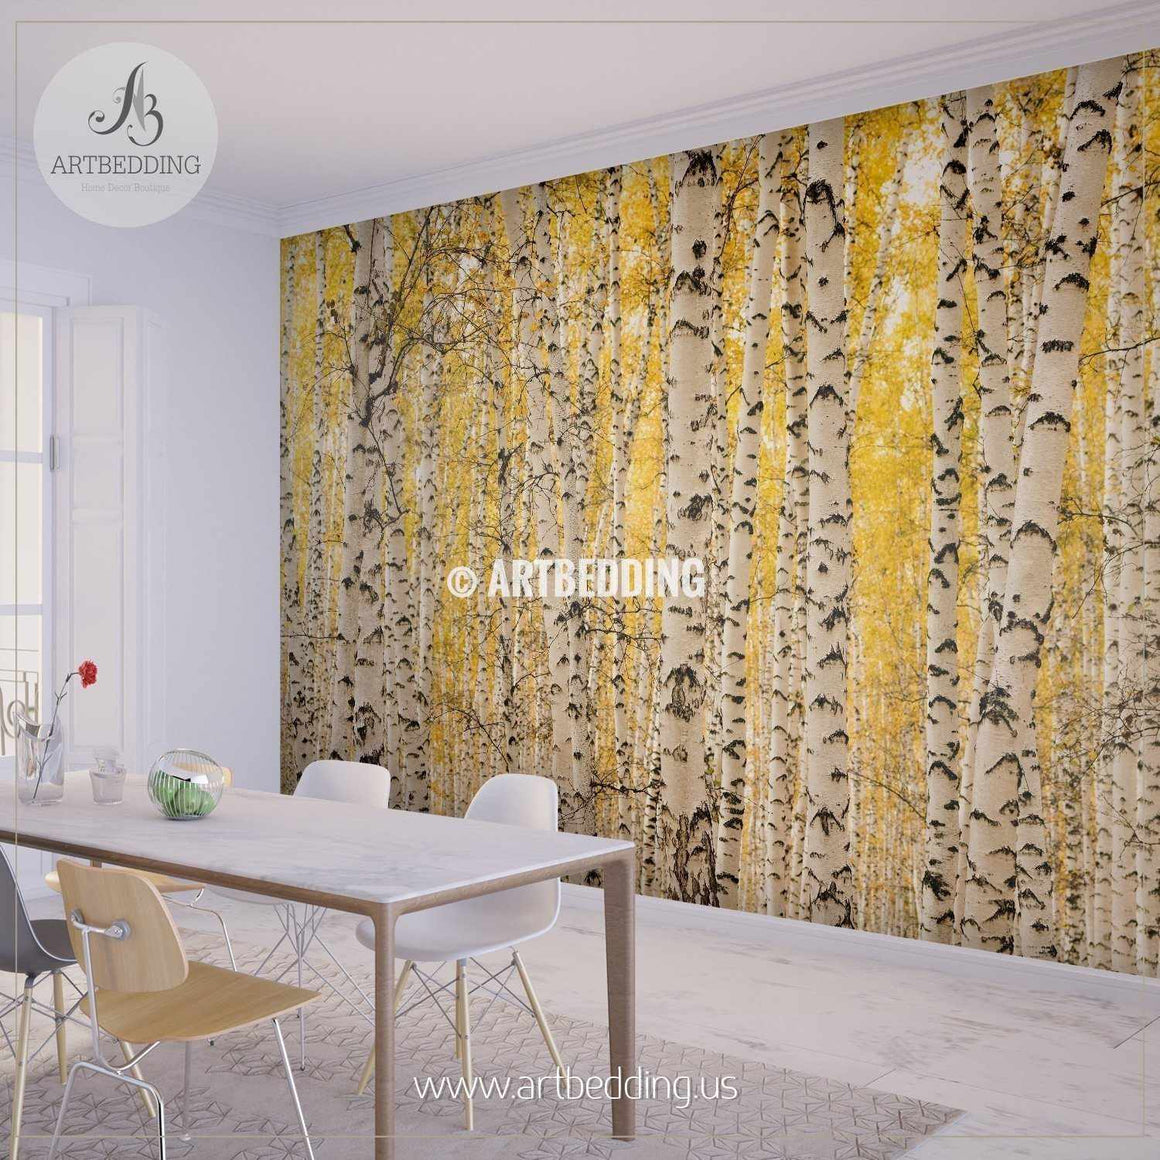 Birch Forest Autumn Background Wall Mural, Self Adhesive Peel & Stick wall mural wall mural